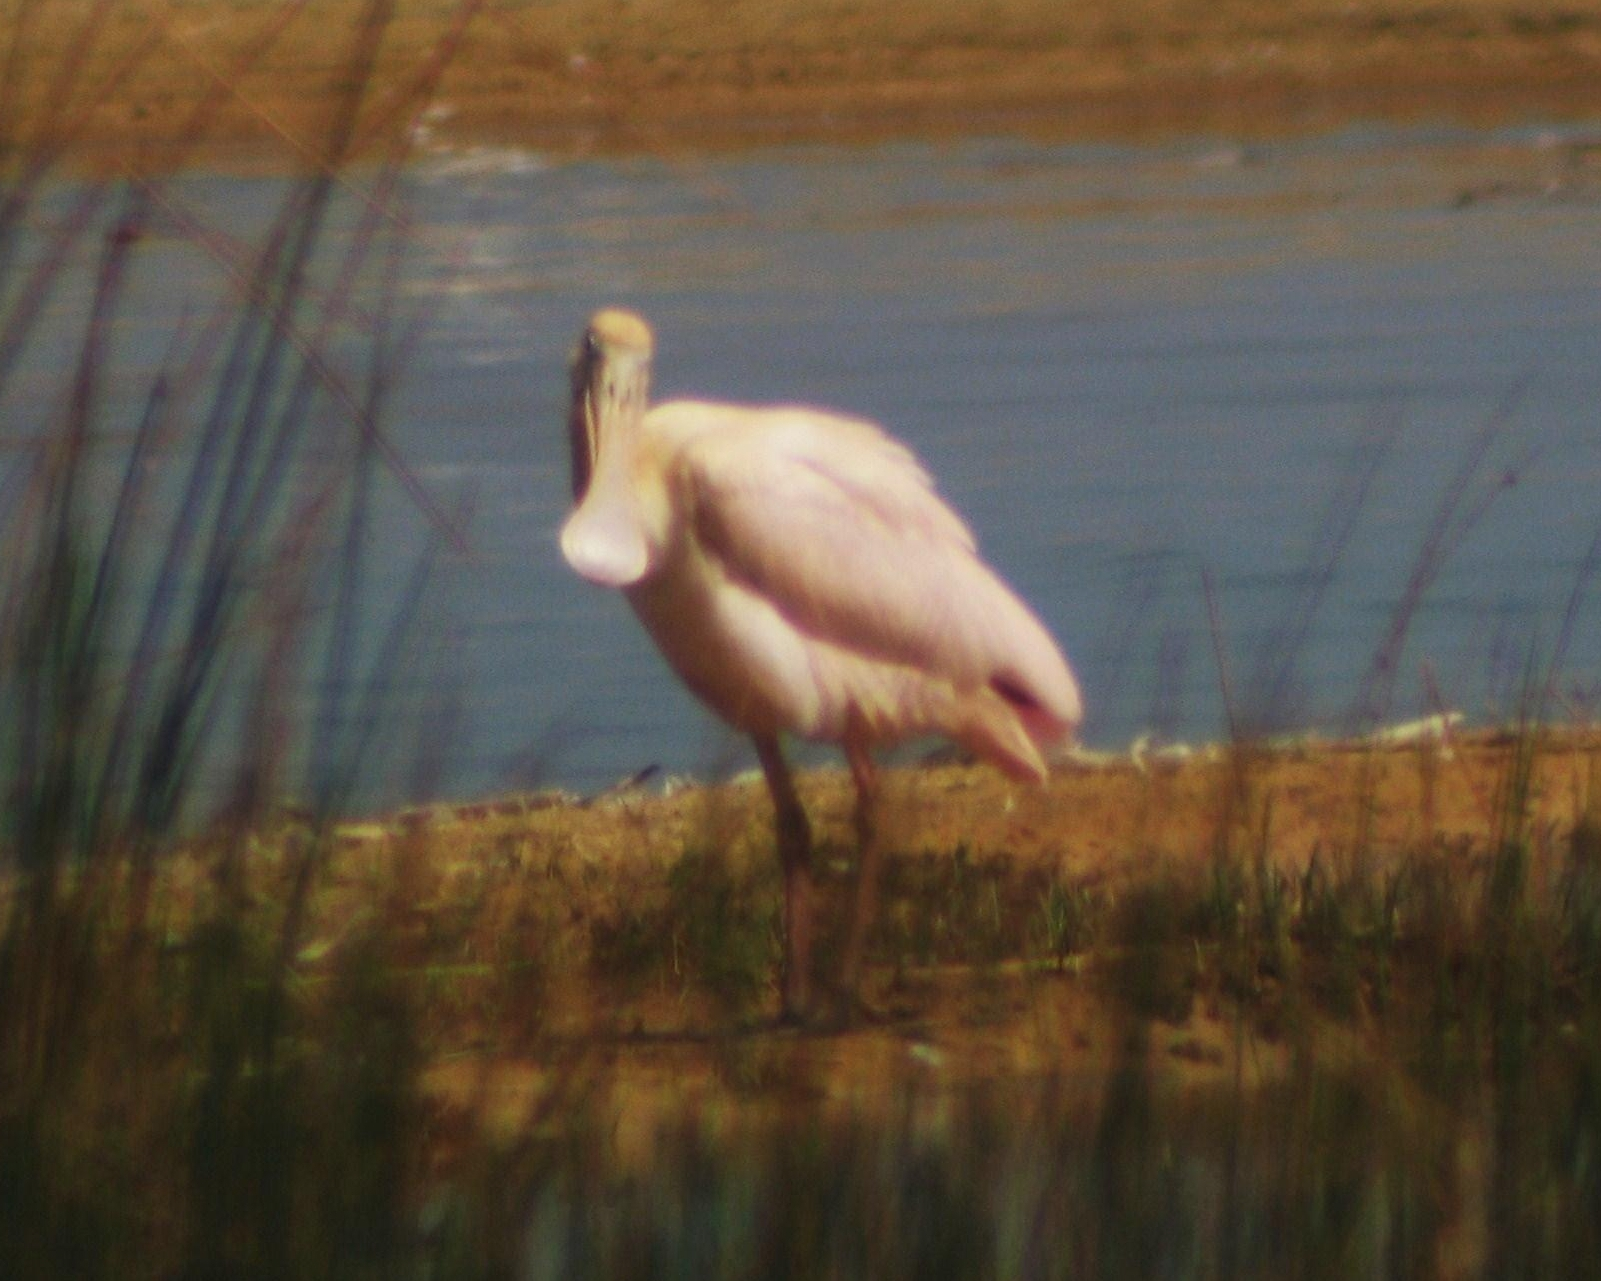 Scientific Name: Roseate Spoonbill - Photo: elisban arturo